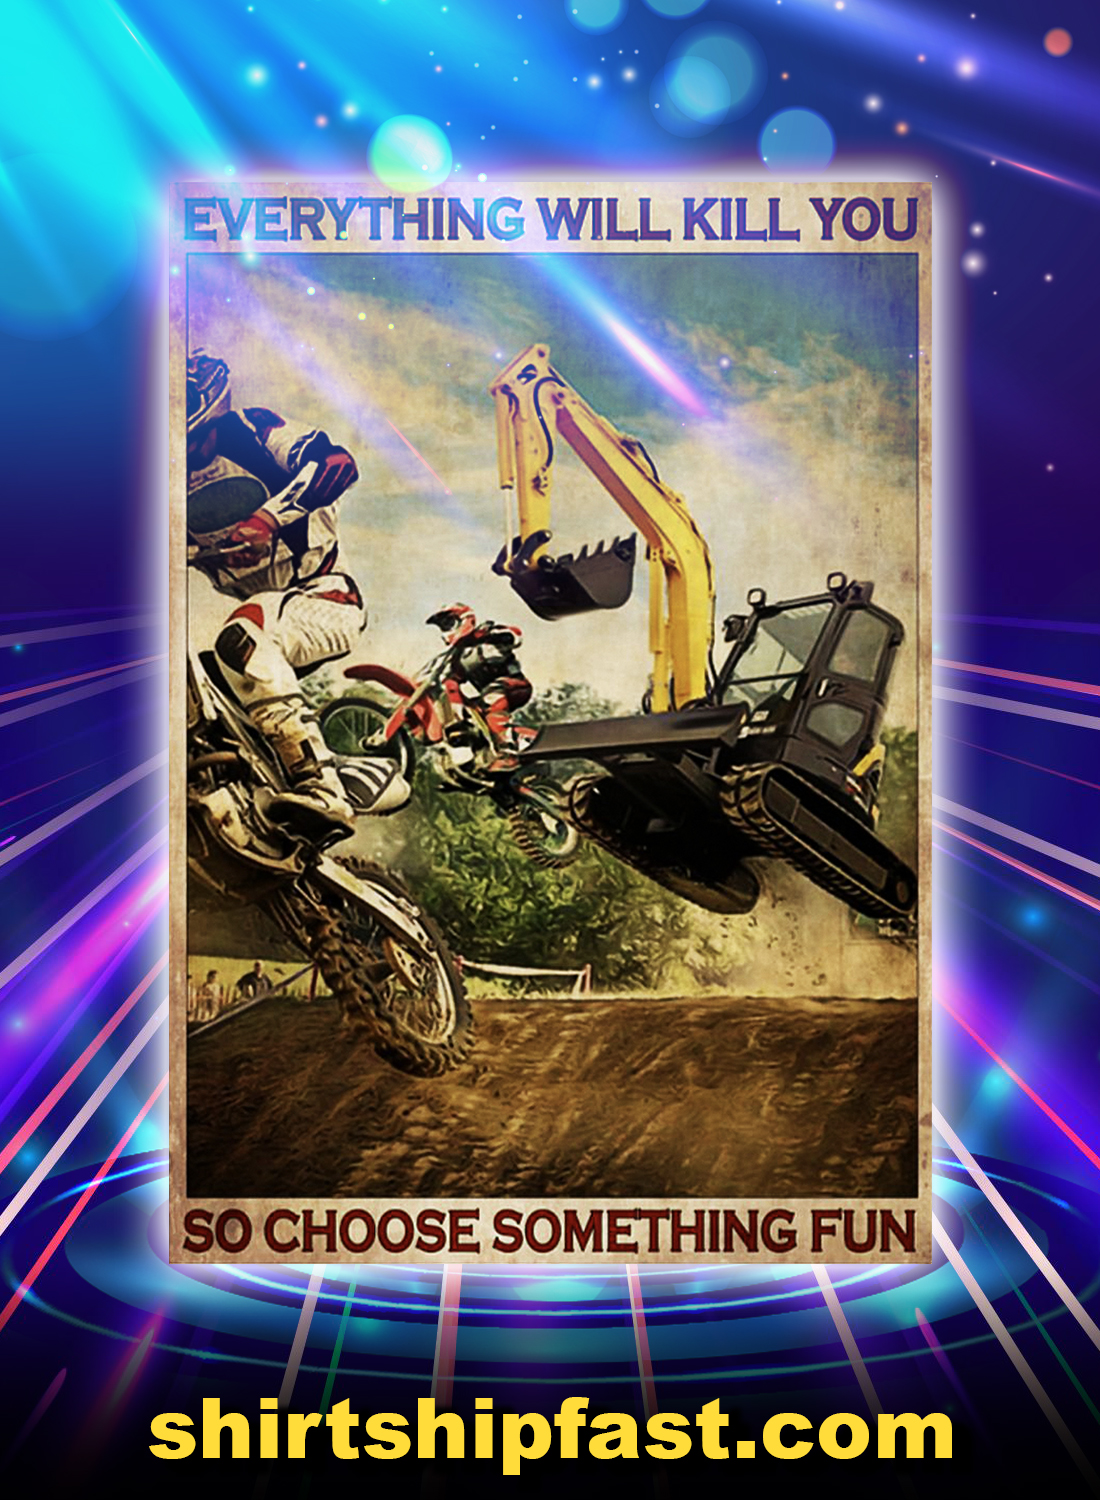 Motocross excavator everything will kill you so choose something fun poster - A4